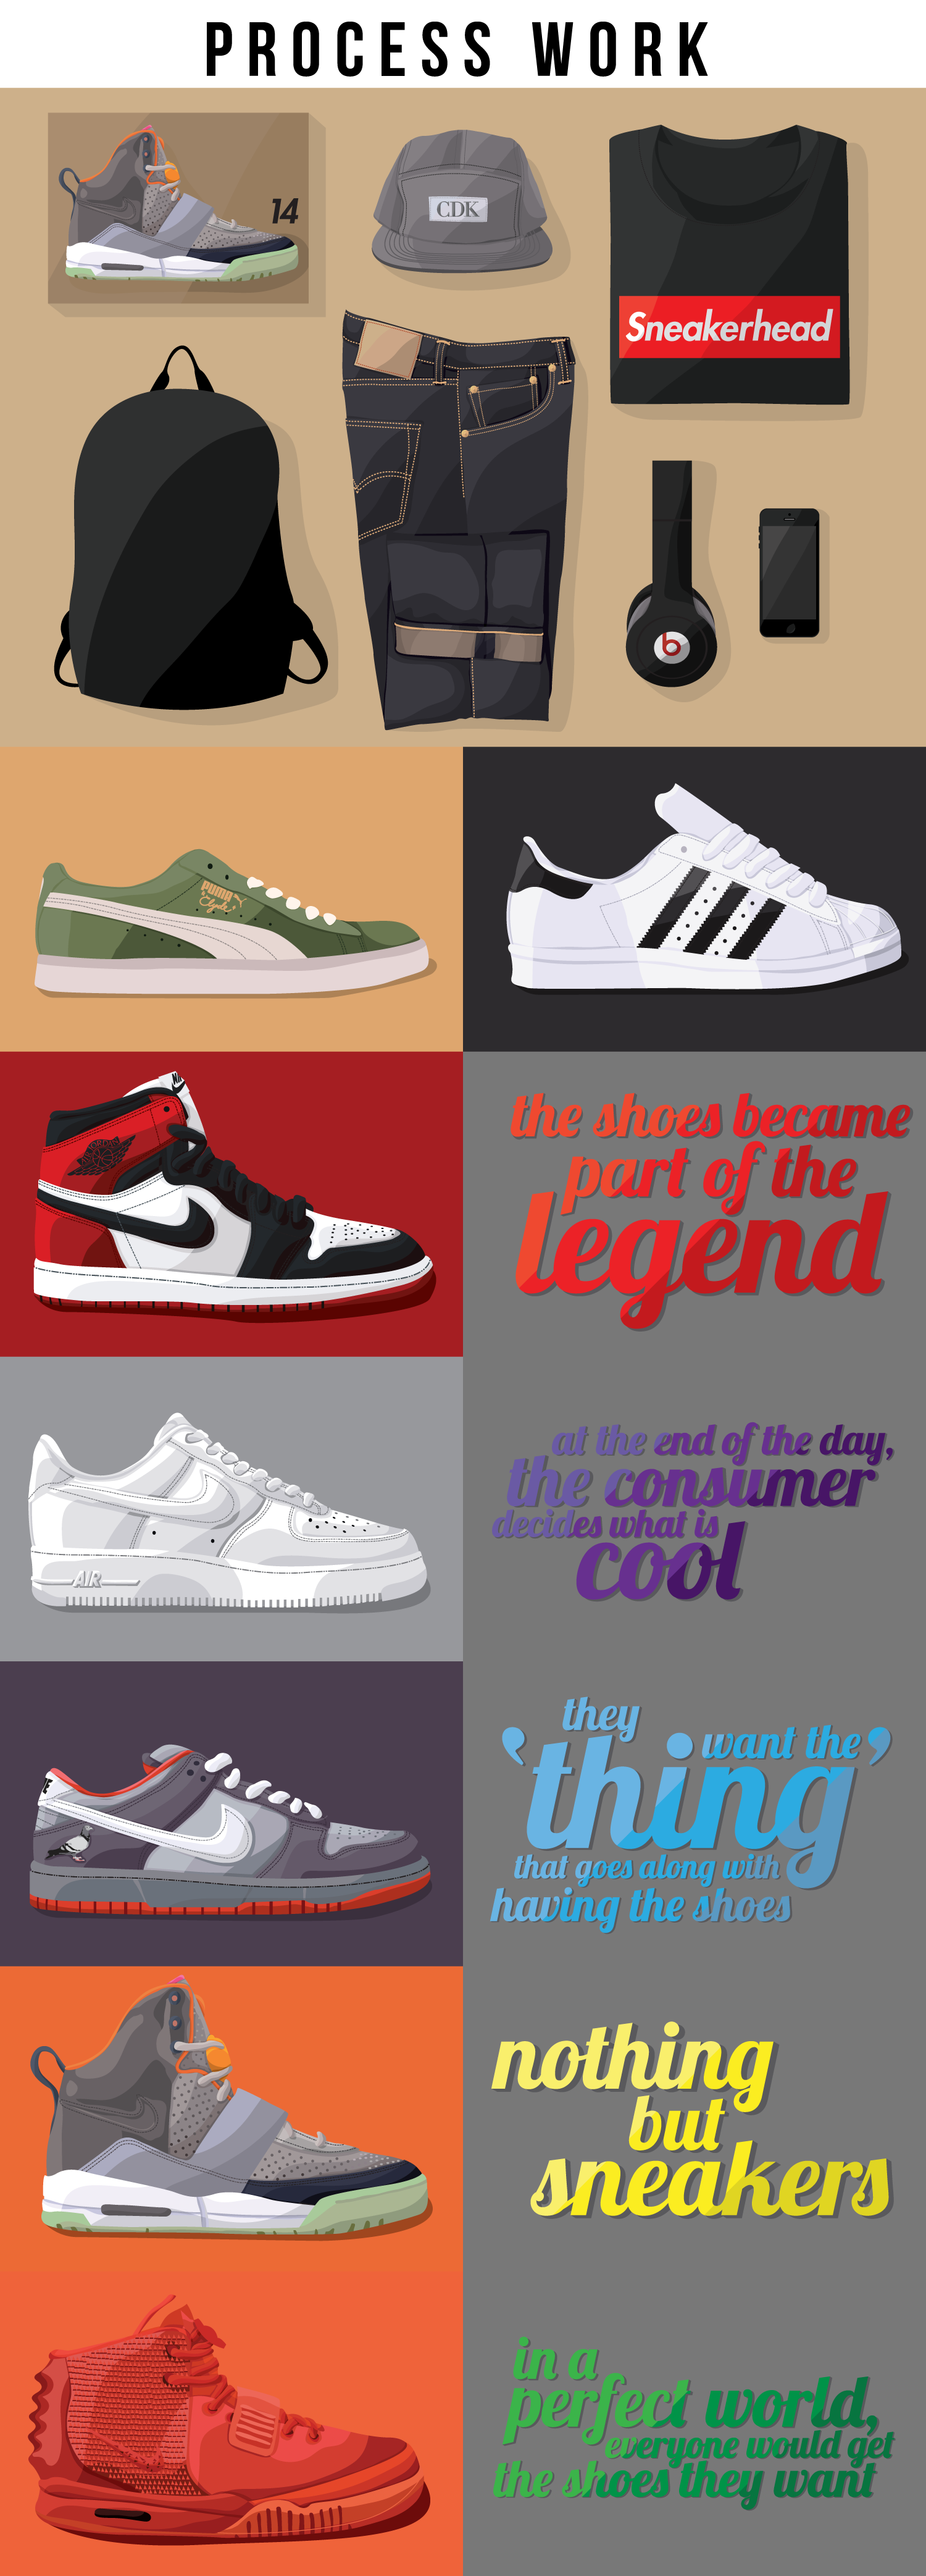 Sneakerhead-Process.png